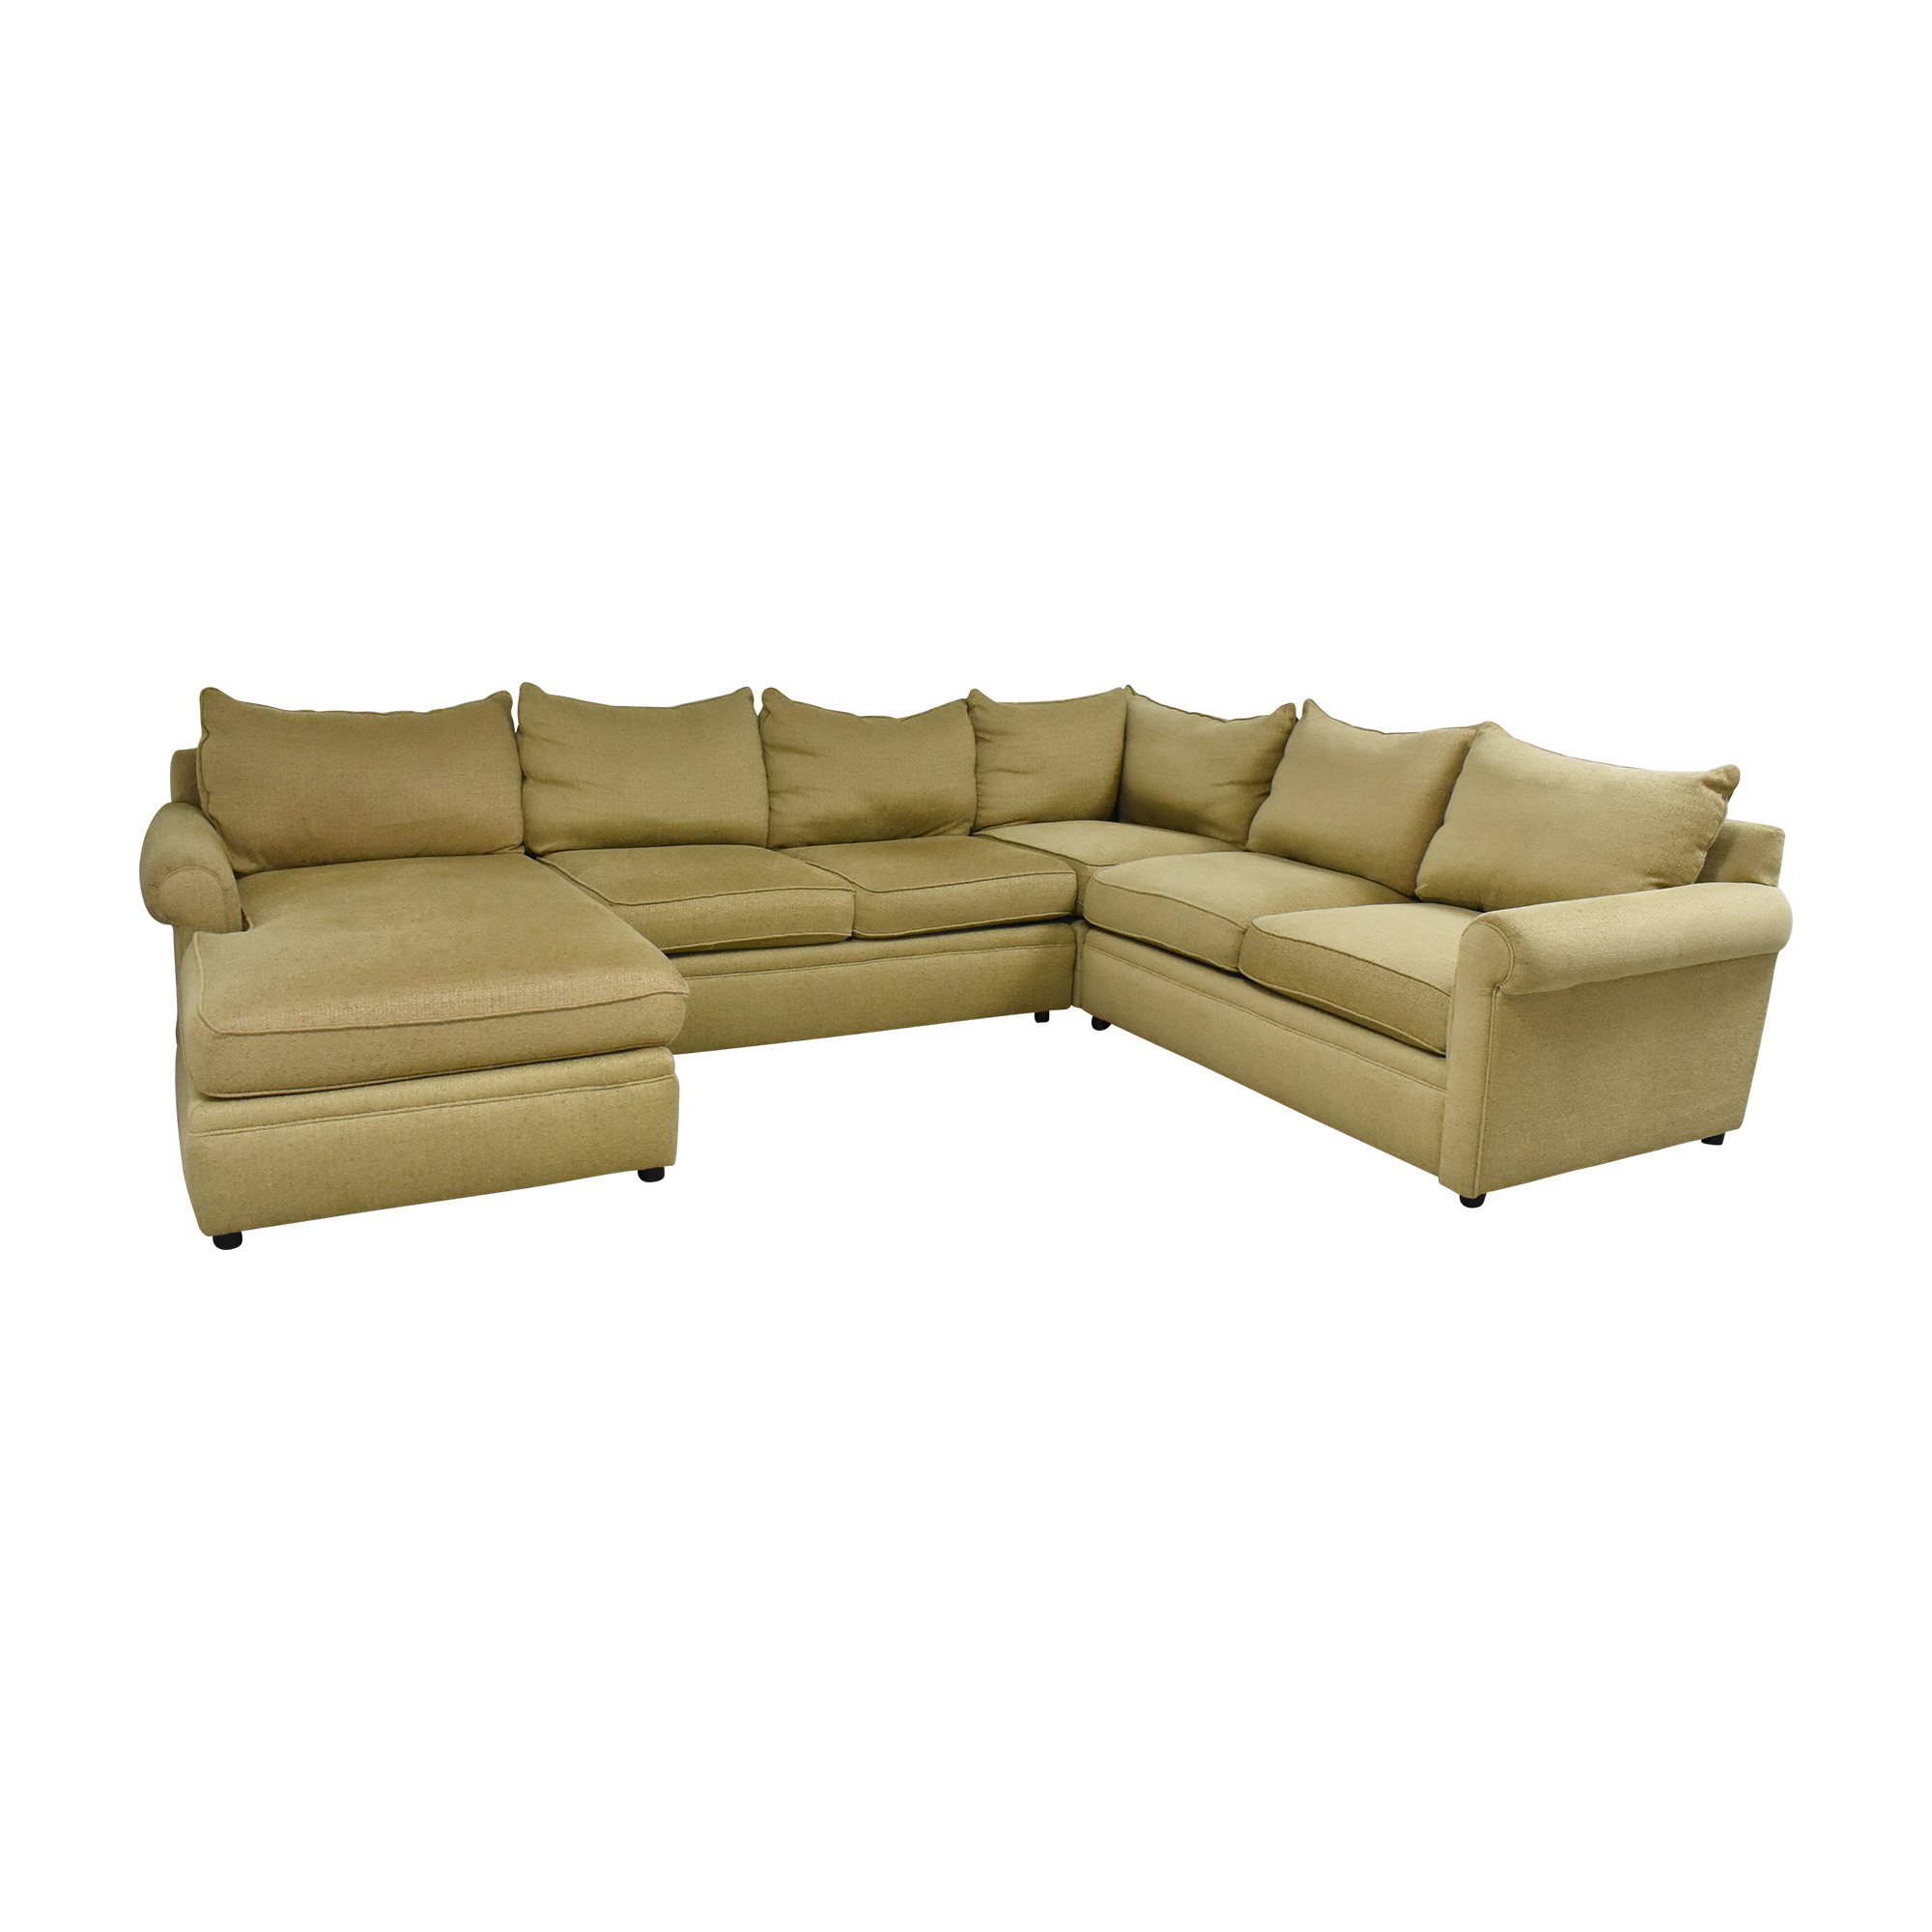 Domain Home Domain Home Sectional Sofa with Chaise price